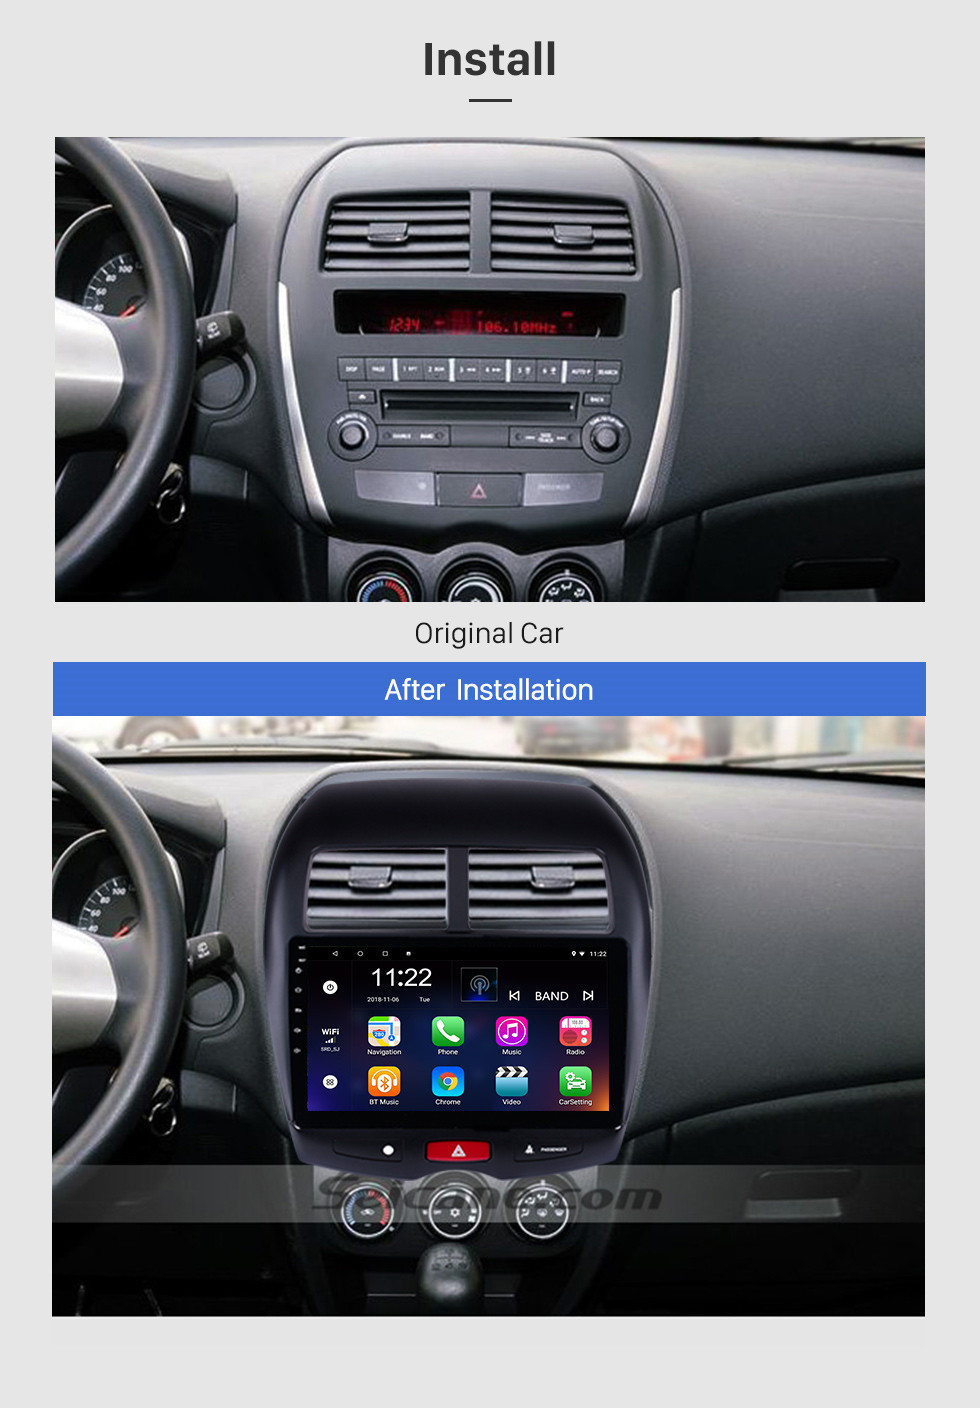 Seicane 10.1 inch Android 8.1 HD touchscreen 2012 CITROEN C4 GPS Navigation Radio with Bluetooth WIFI support Steering Wheel Control Backup Camera